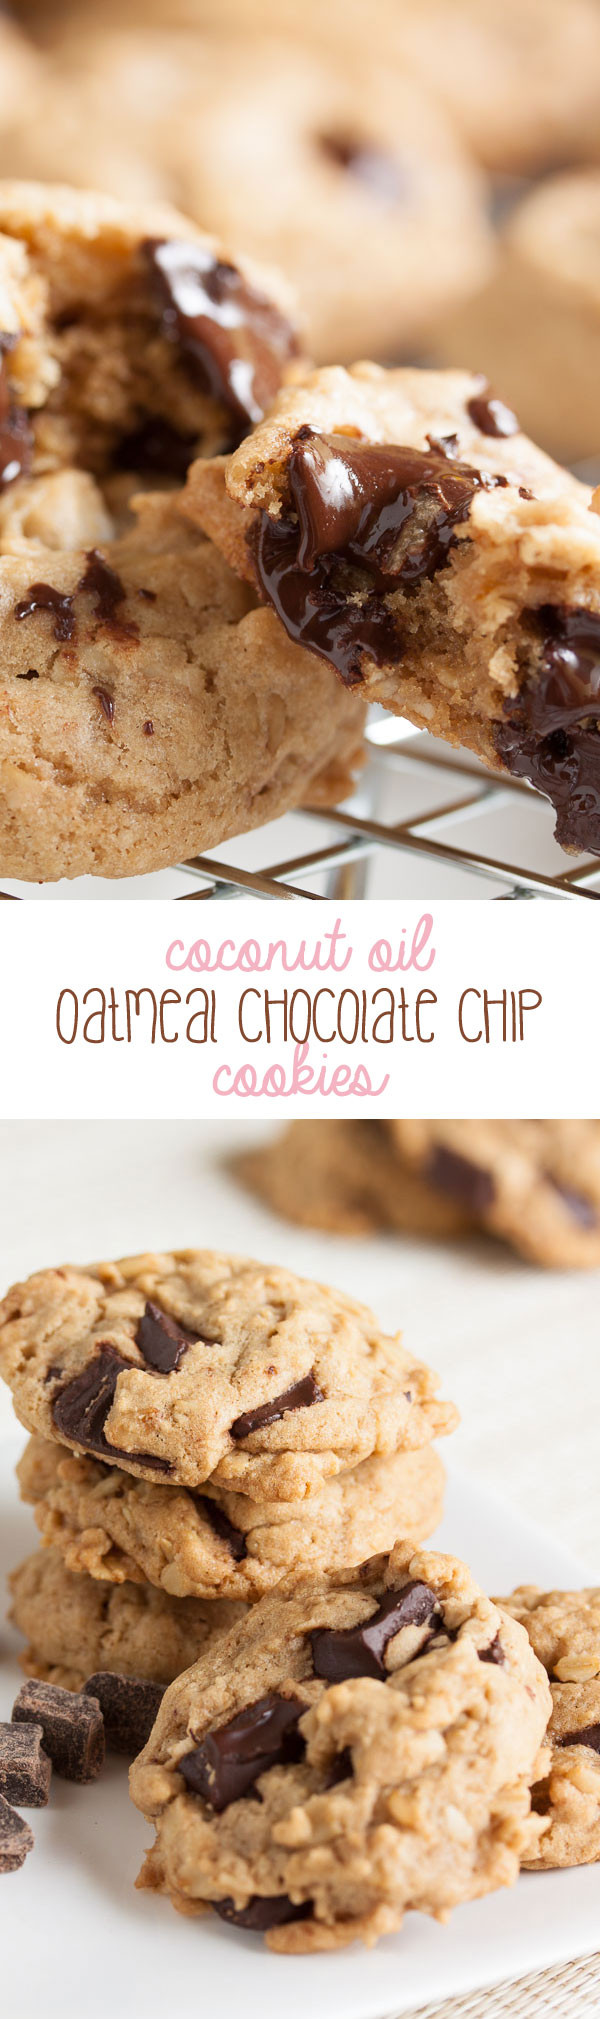 Healthy Chocolate Chip Cookies With Coconut Oil  Coconut Oil Oatmeal Chocolate Chip Cookies